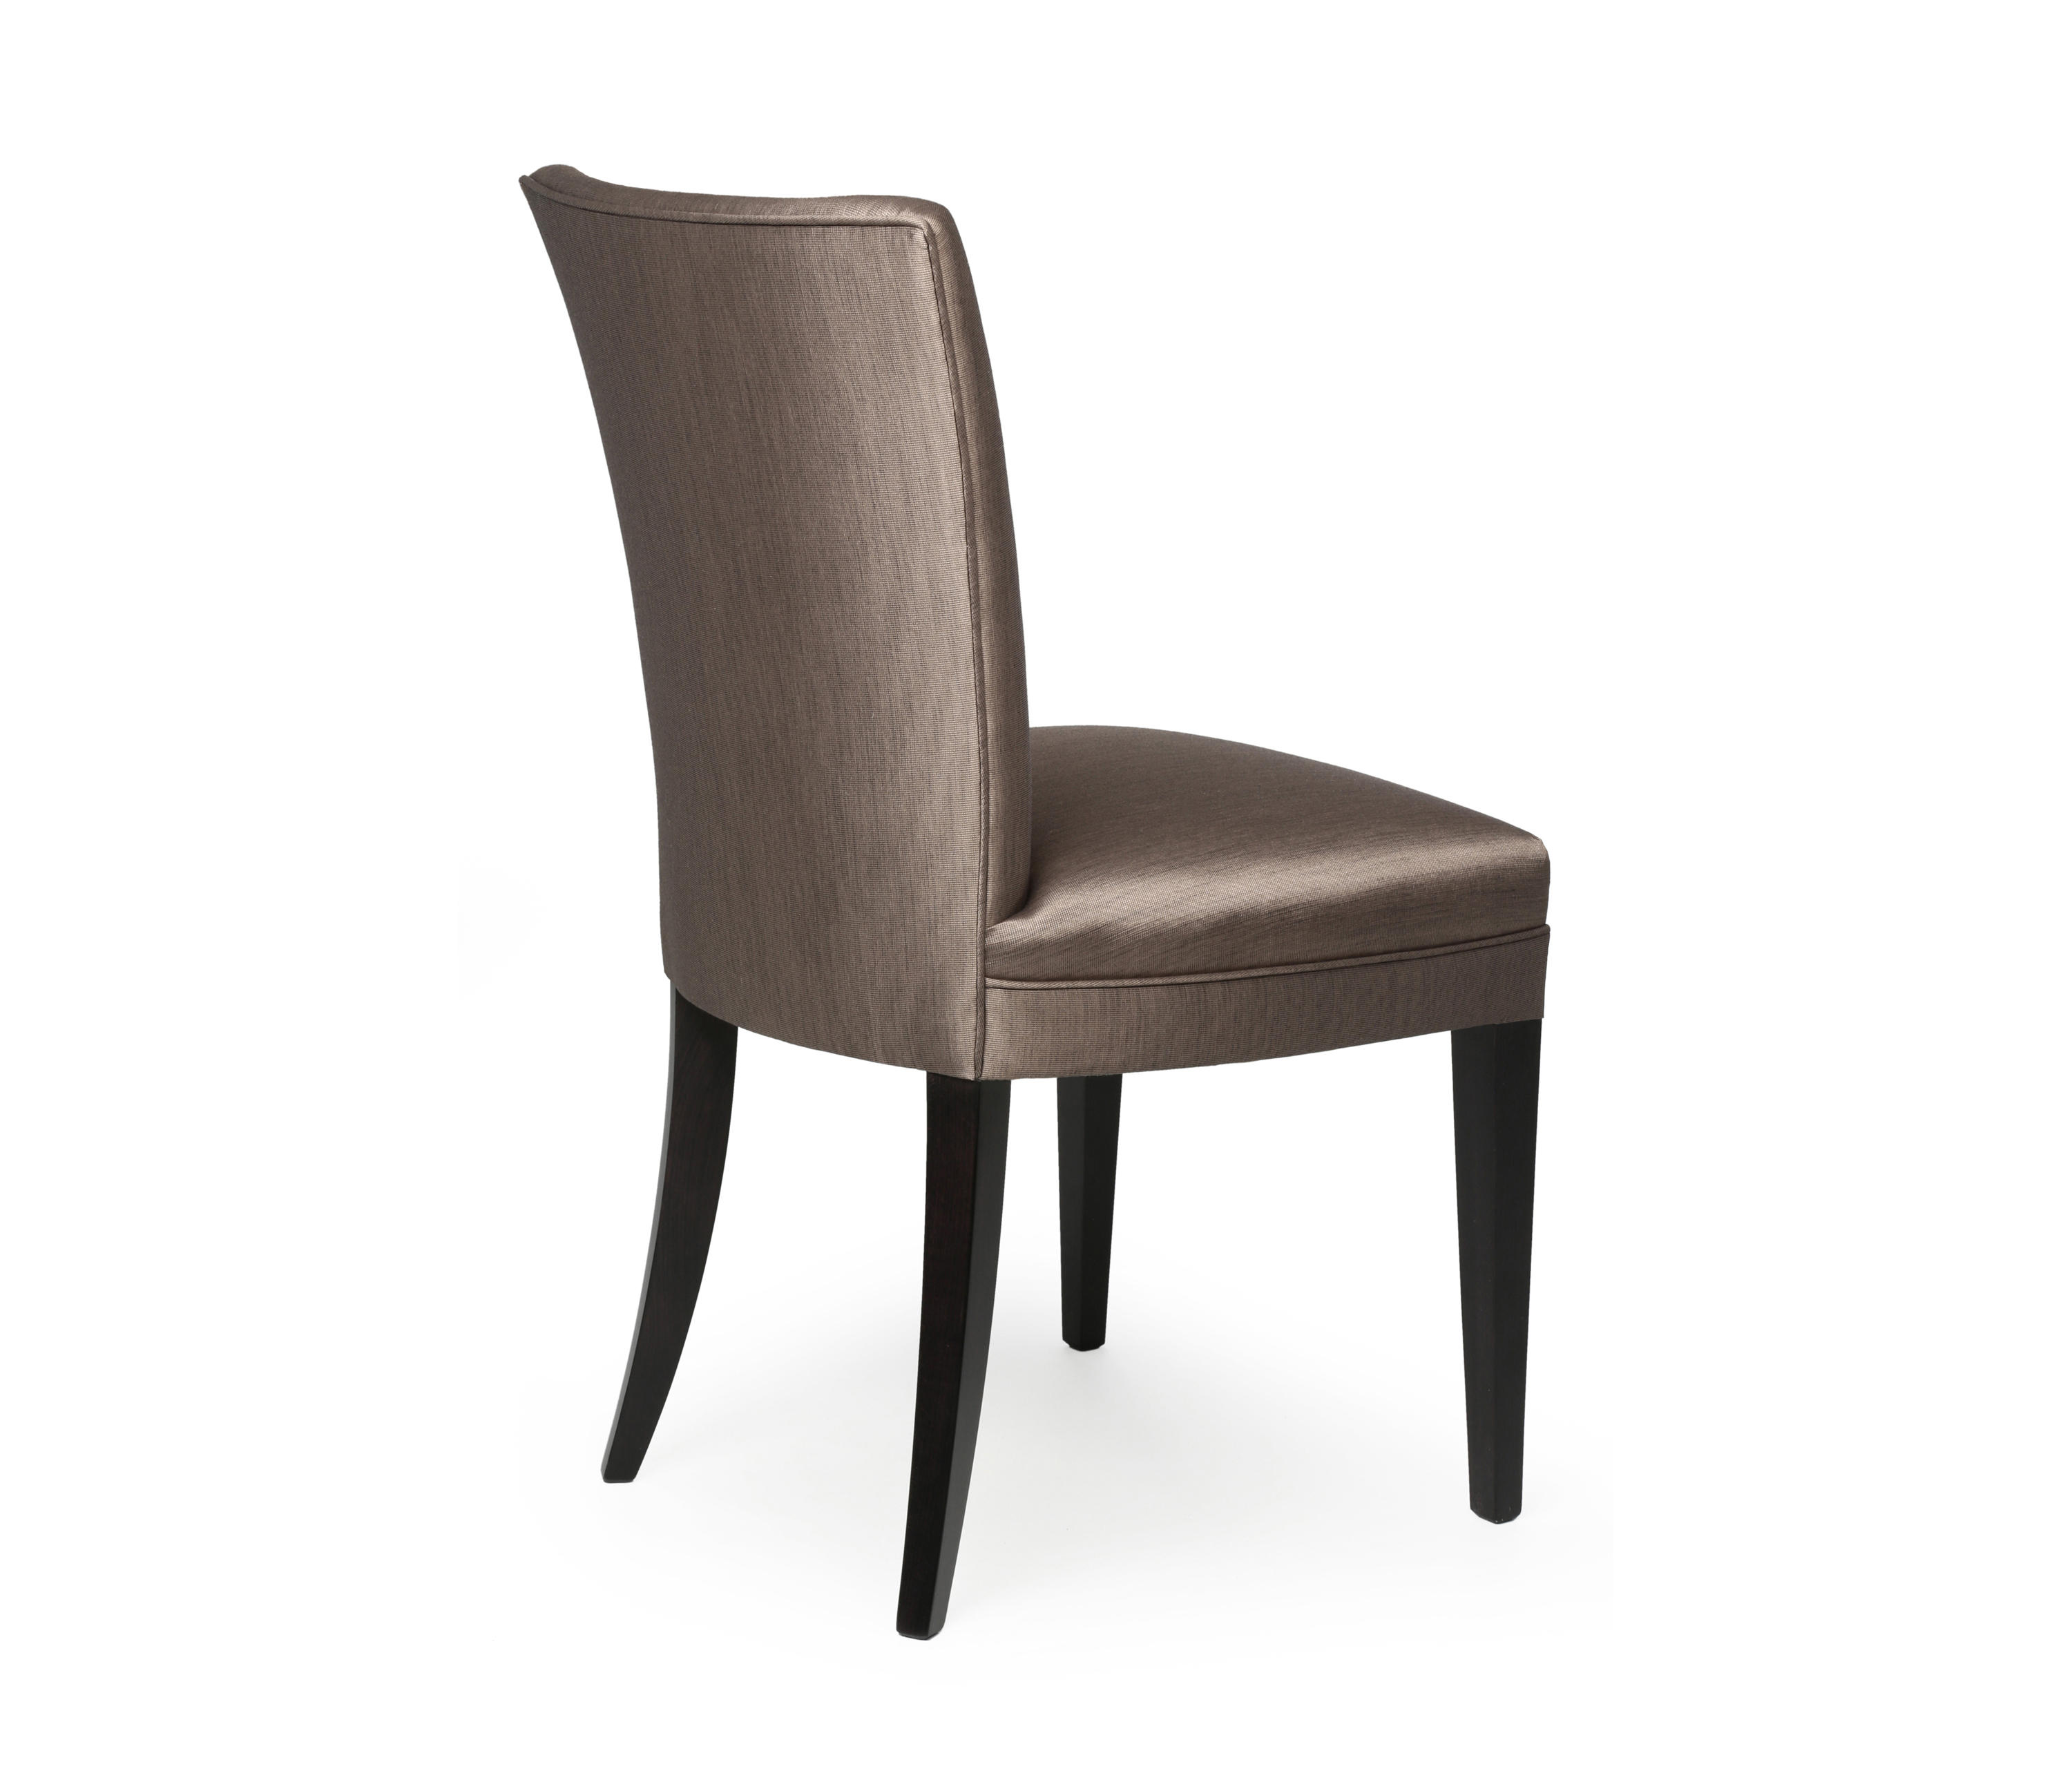 PARIS DINING CHAIR Chairs from The Sofa & Chair pany